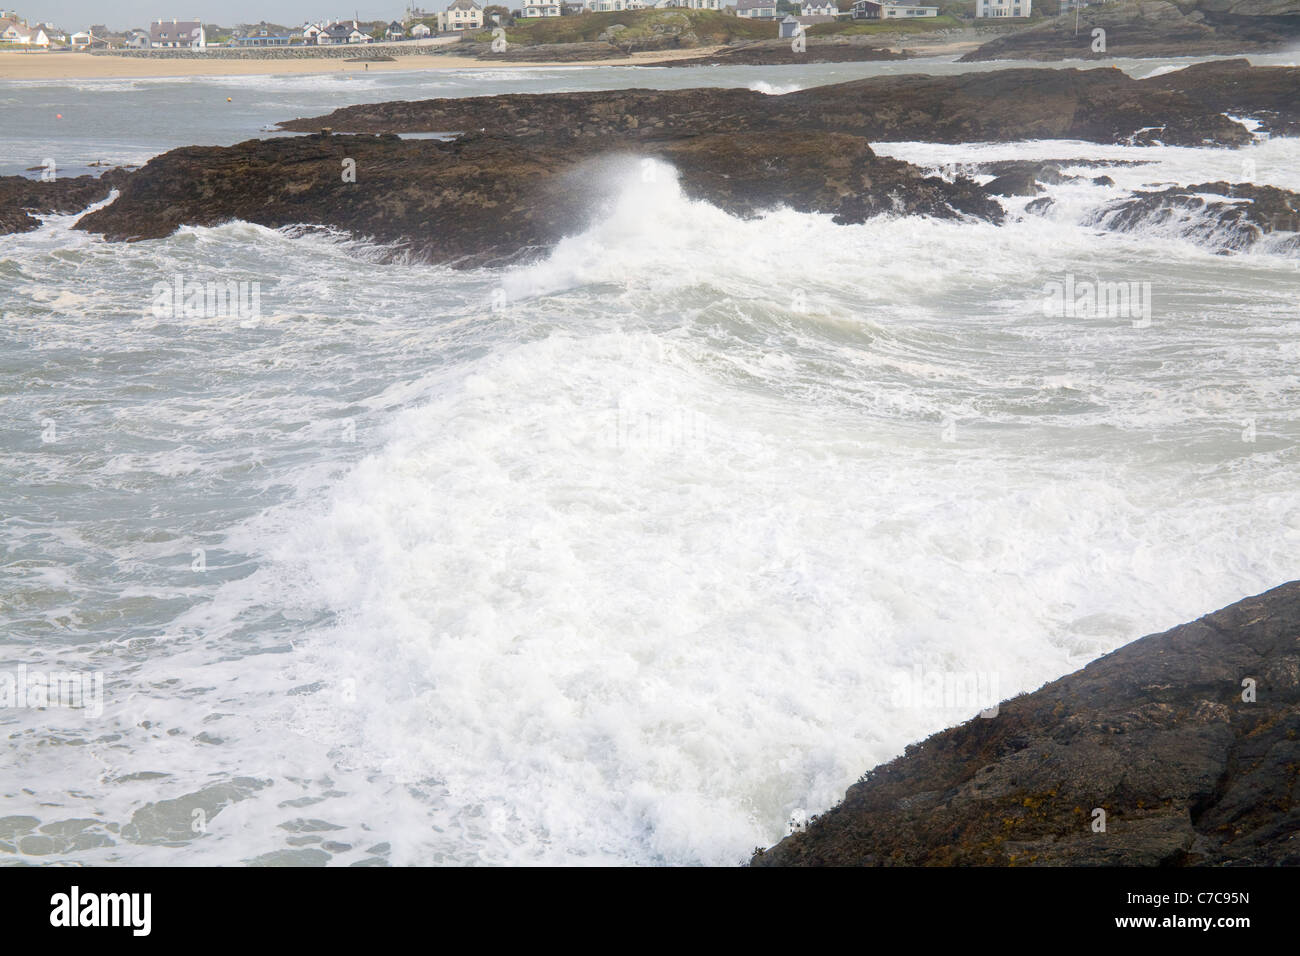 Trearddur Bay Isle of Anglesey North Wales September Waves crashing over rocks blown by gale force winds - Stock Image